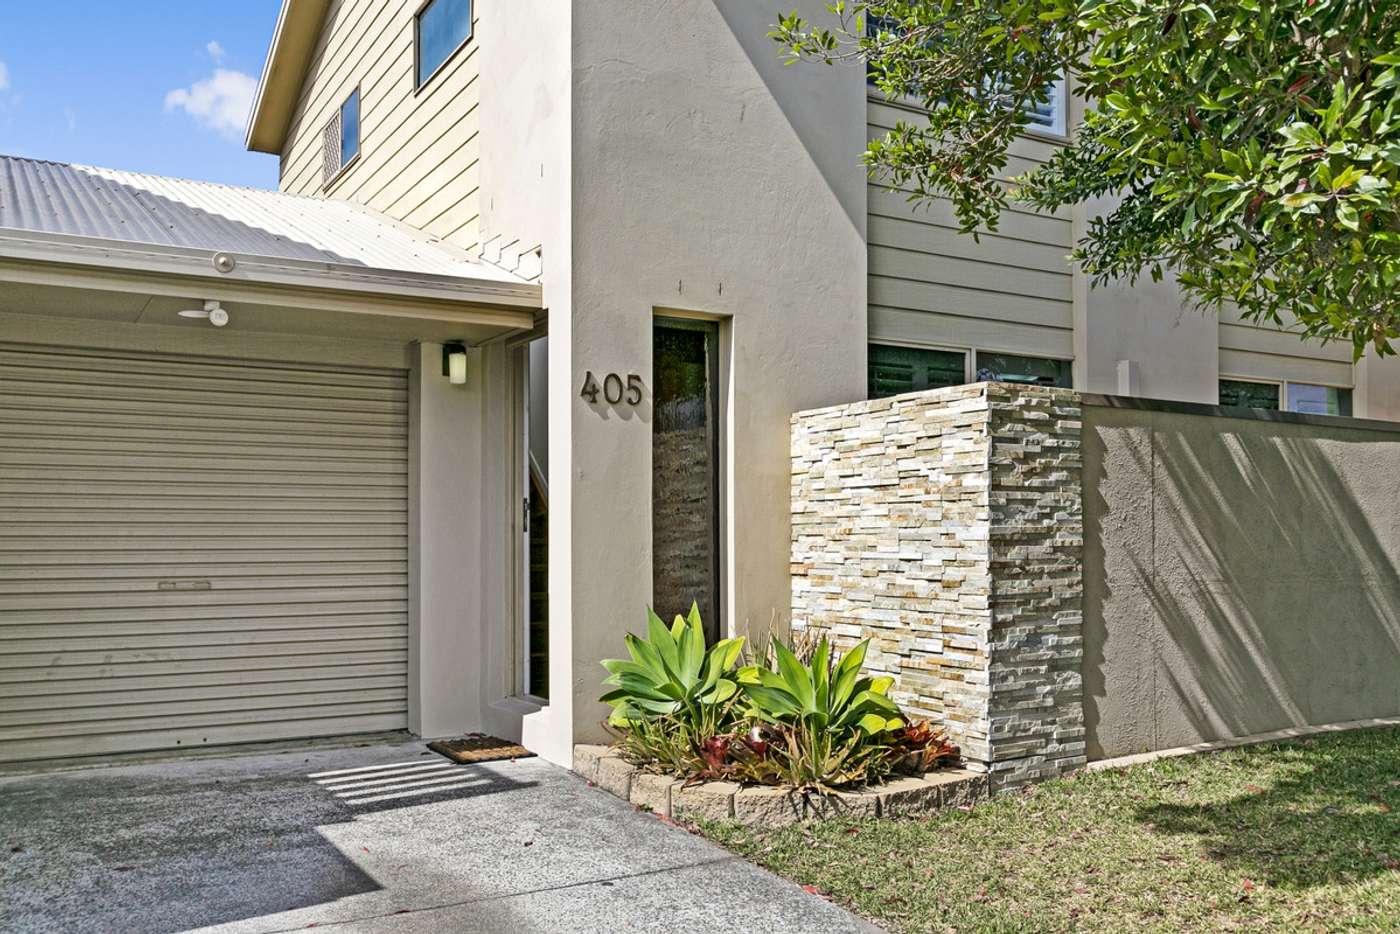 Main view of Homely semiDetached listing, 405 Cypress Terrace North, Palm Beach QLD 4221